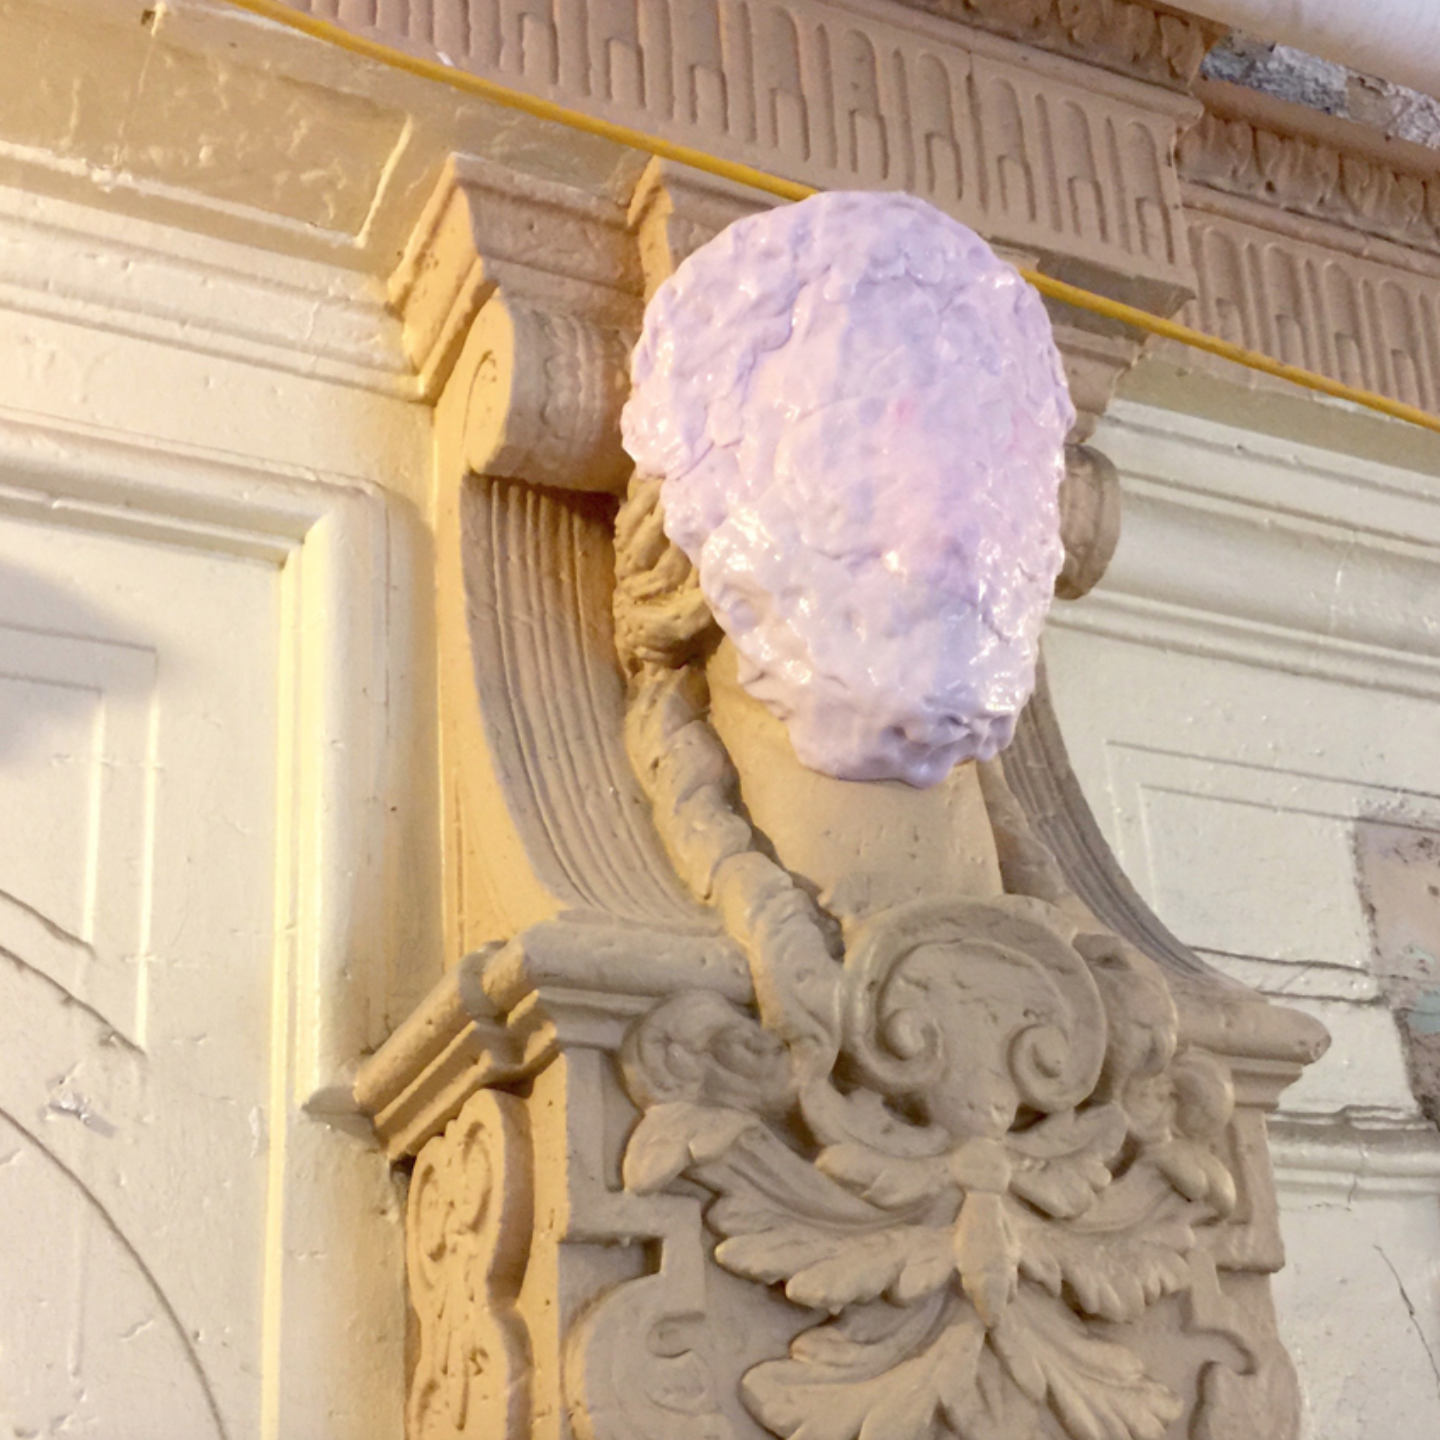 Leslie Fry made rubber molds of the ornamentation on the pilasters that framed the niches as a place to start with her pieces. Photo courtesy of the artist.